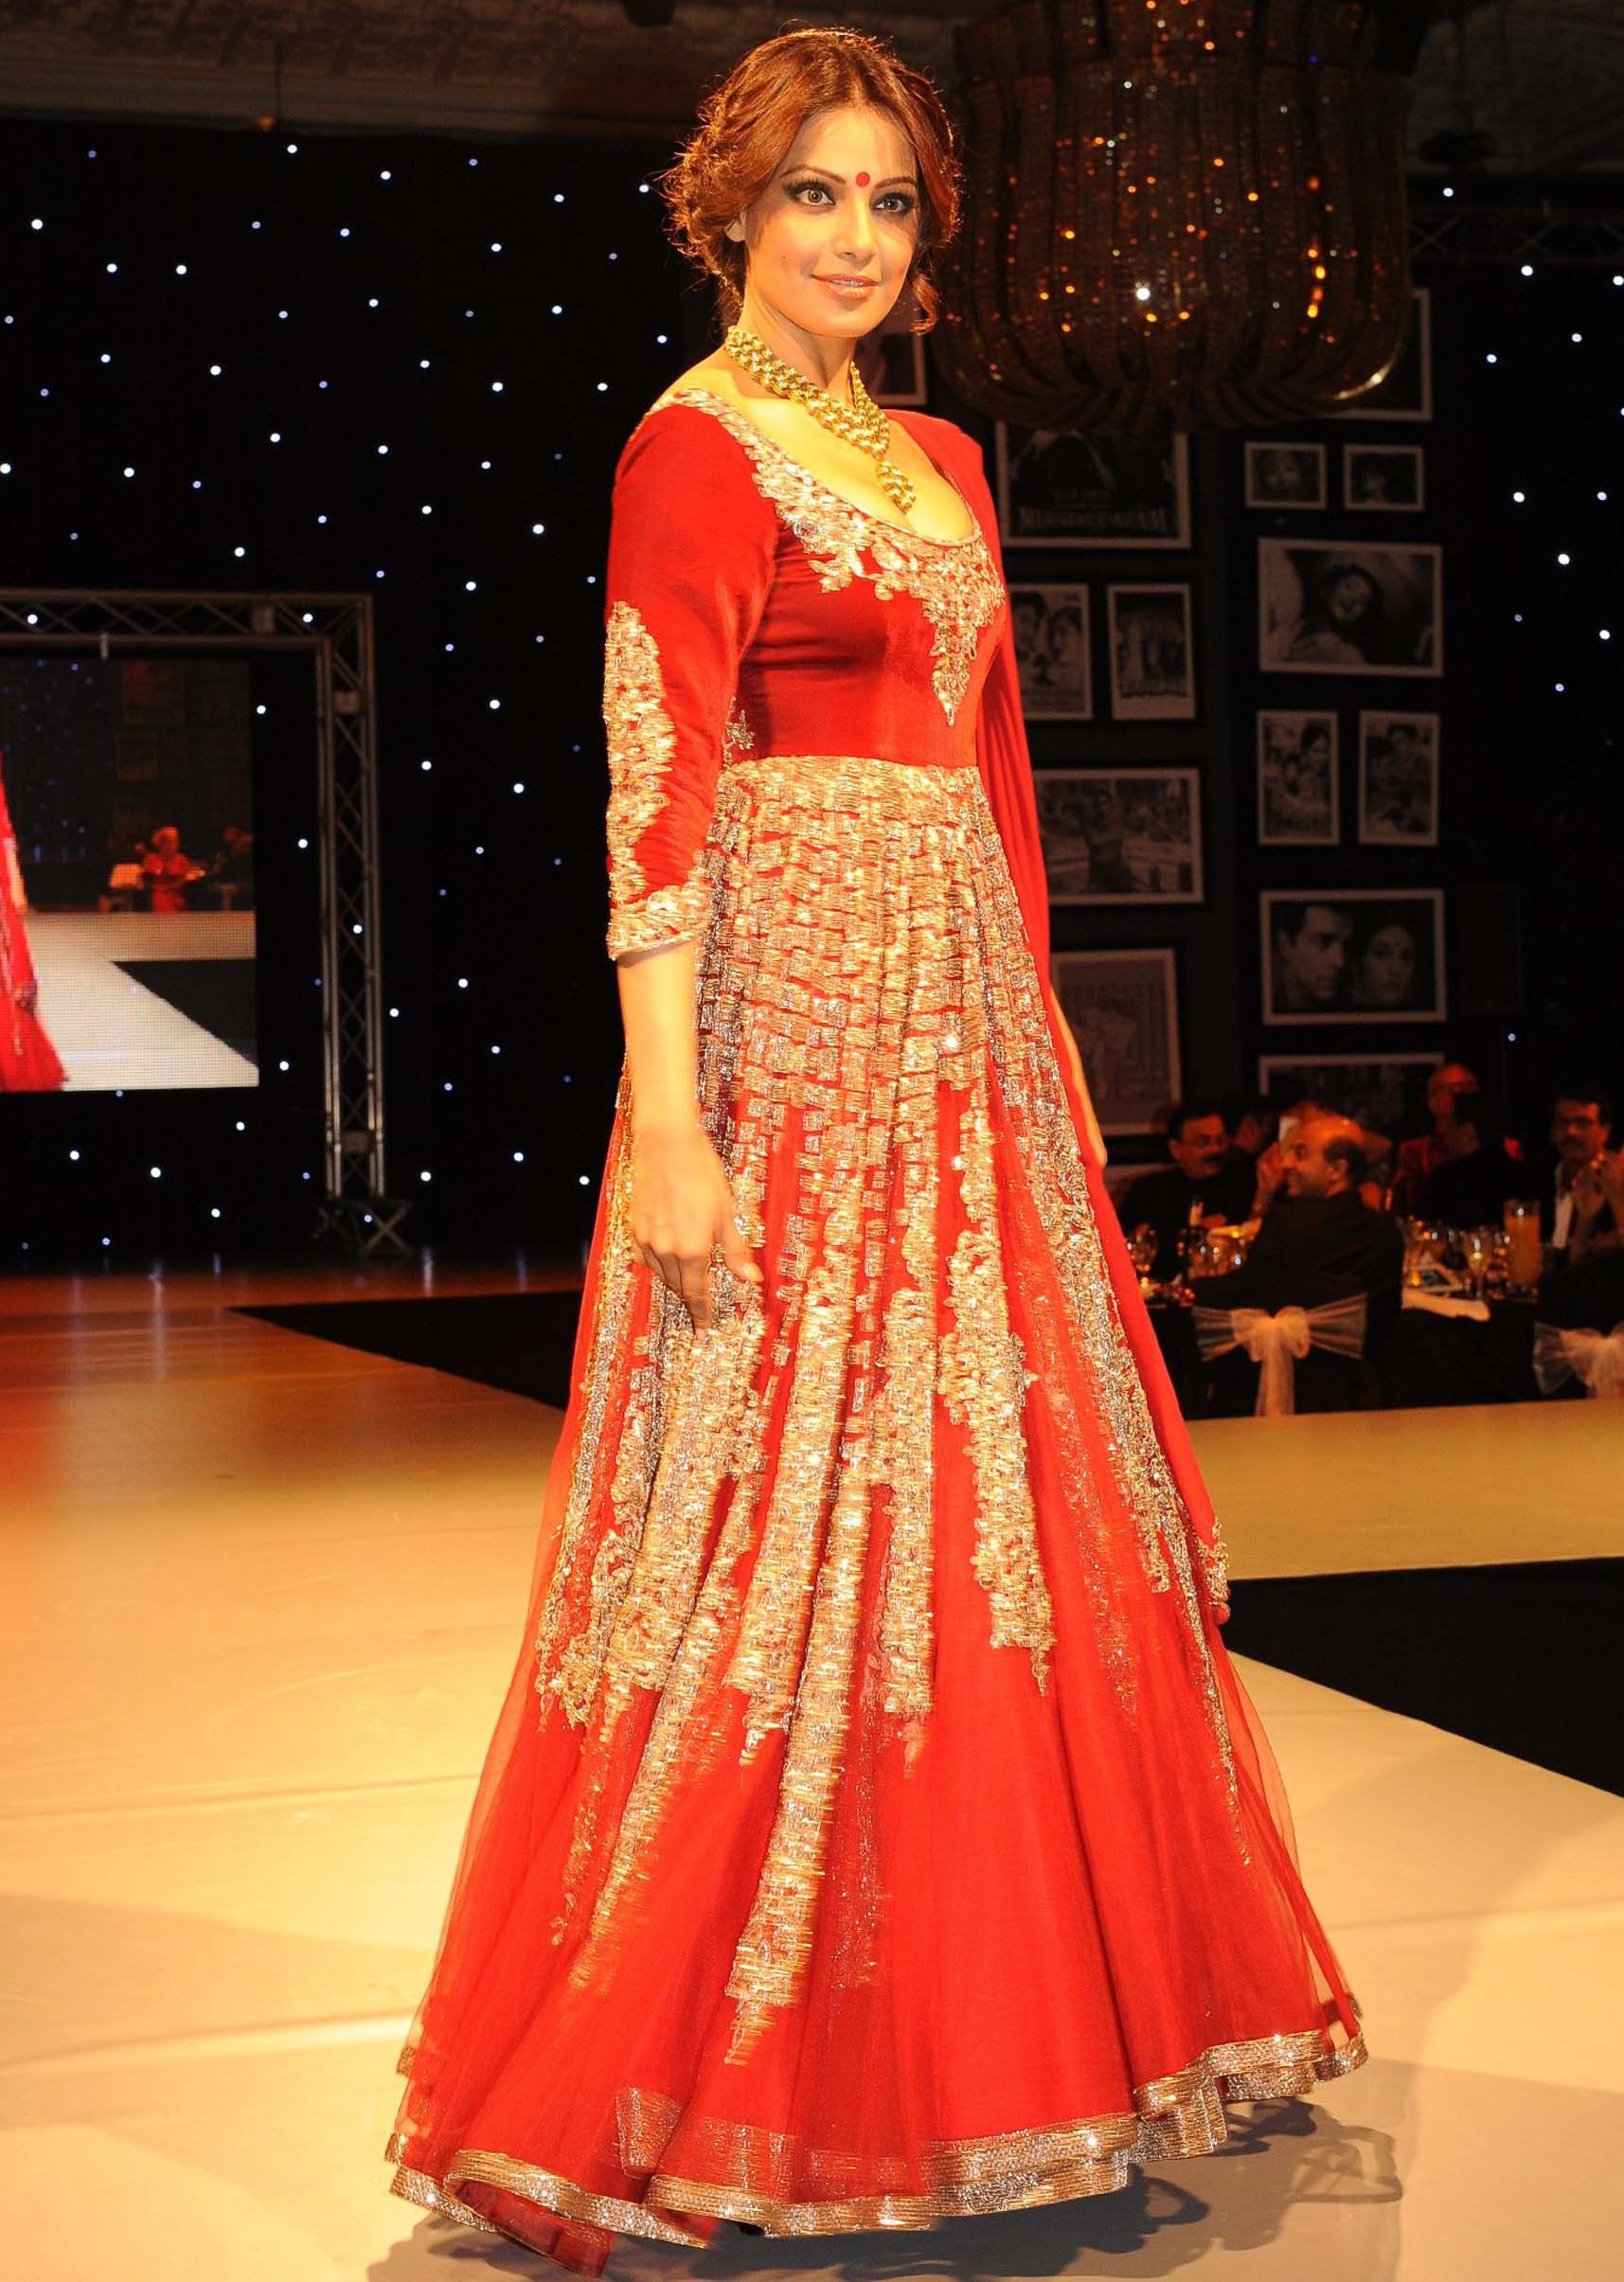 Manish malhotra anarkali manish malhotra anarkali hd wallpapers car - Bipasha Basu In Red Dress Walking The Ramp For Manish Malhotra Festive Collection In London